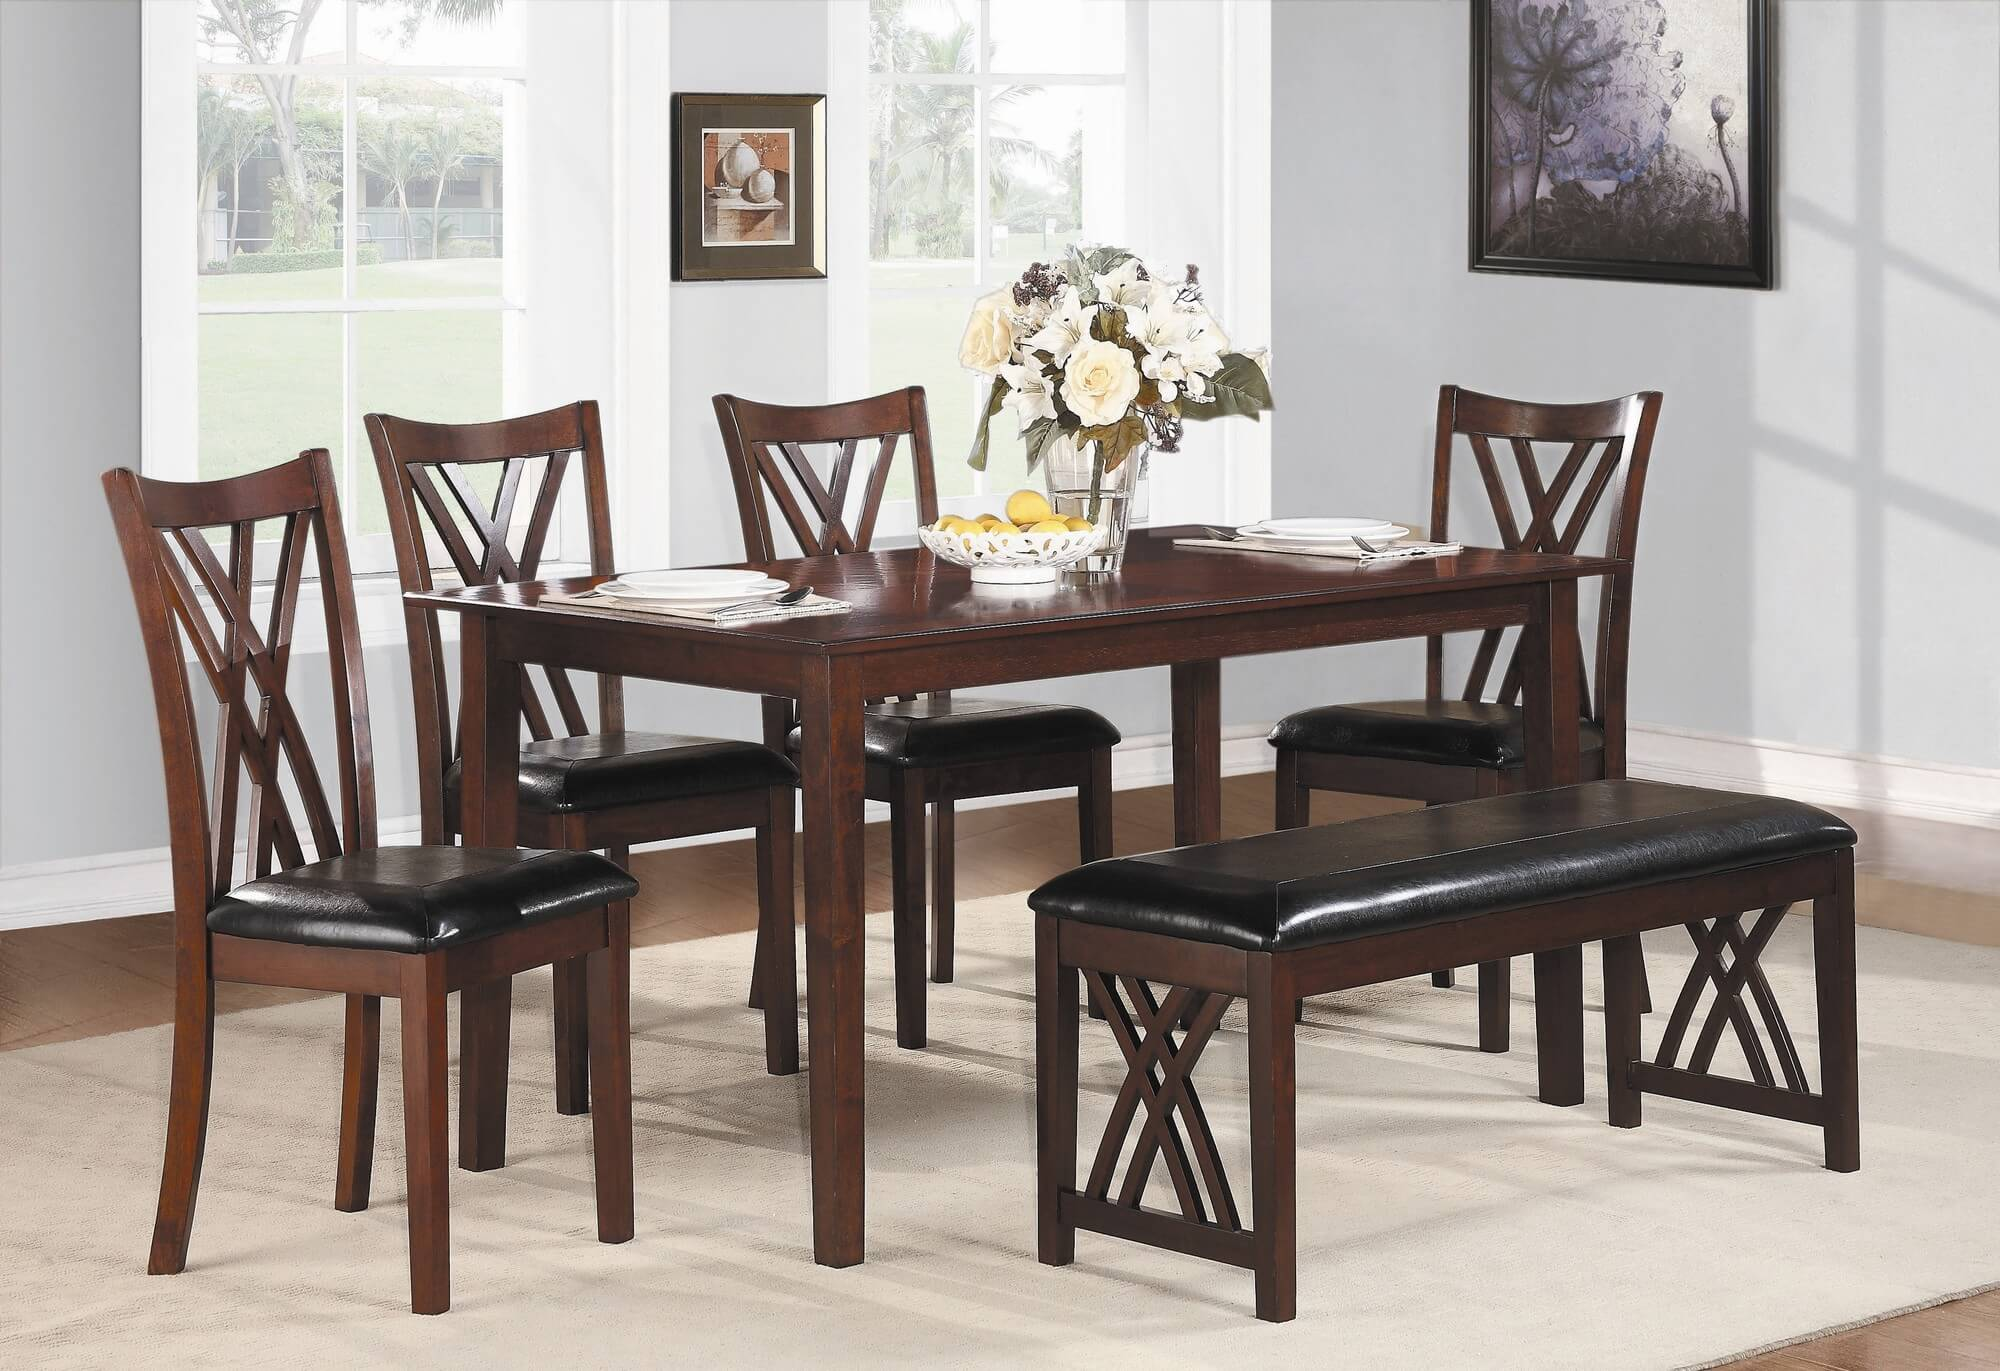 Big small dining room sets with bench seating